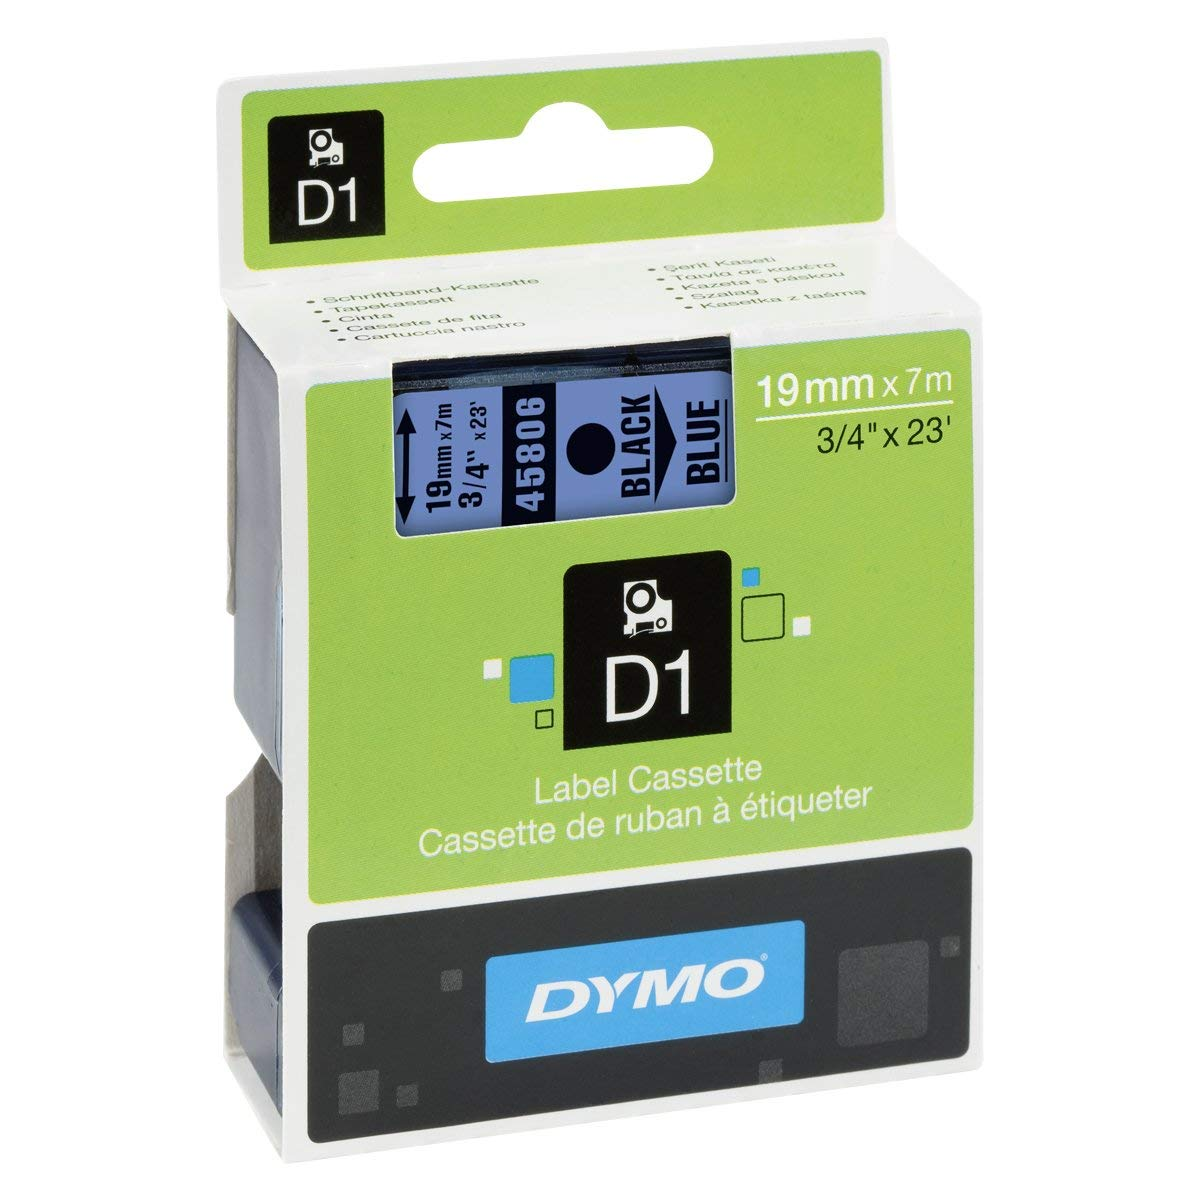 Dymo S0720860 (45806) D1 Standard Label Tape 19mm x 7m - Black on Blue (pc)